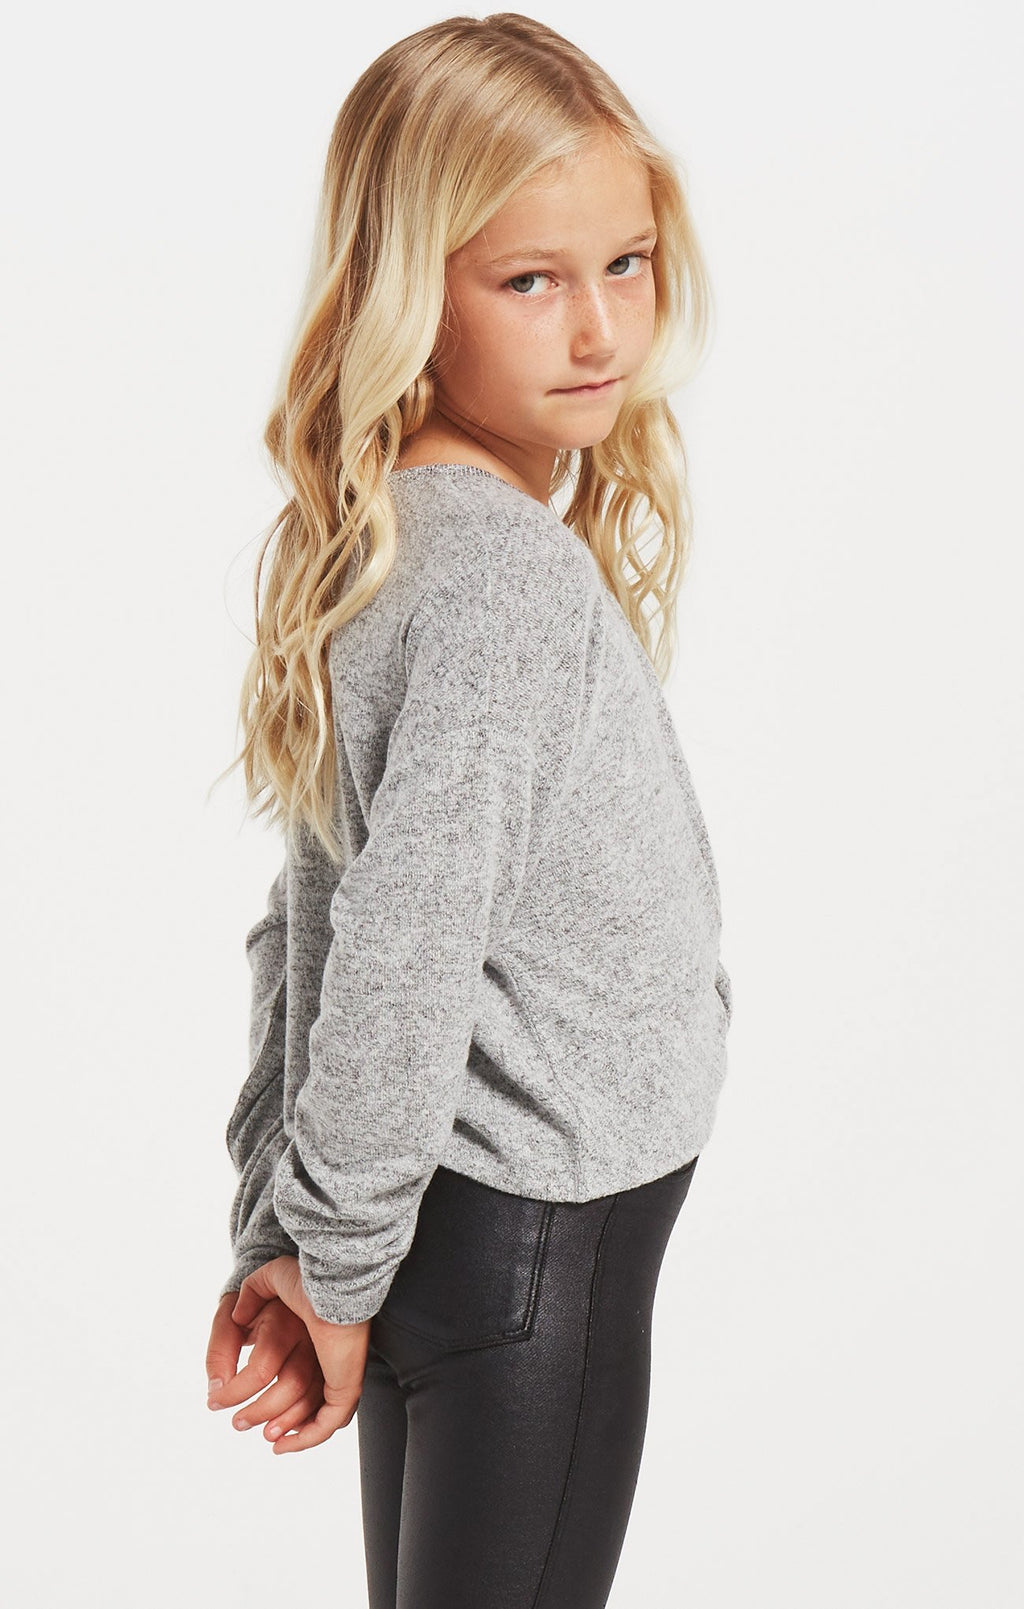 Z SUPPLY GIRLS HARPER MARLED TOP - HEATHER GREY